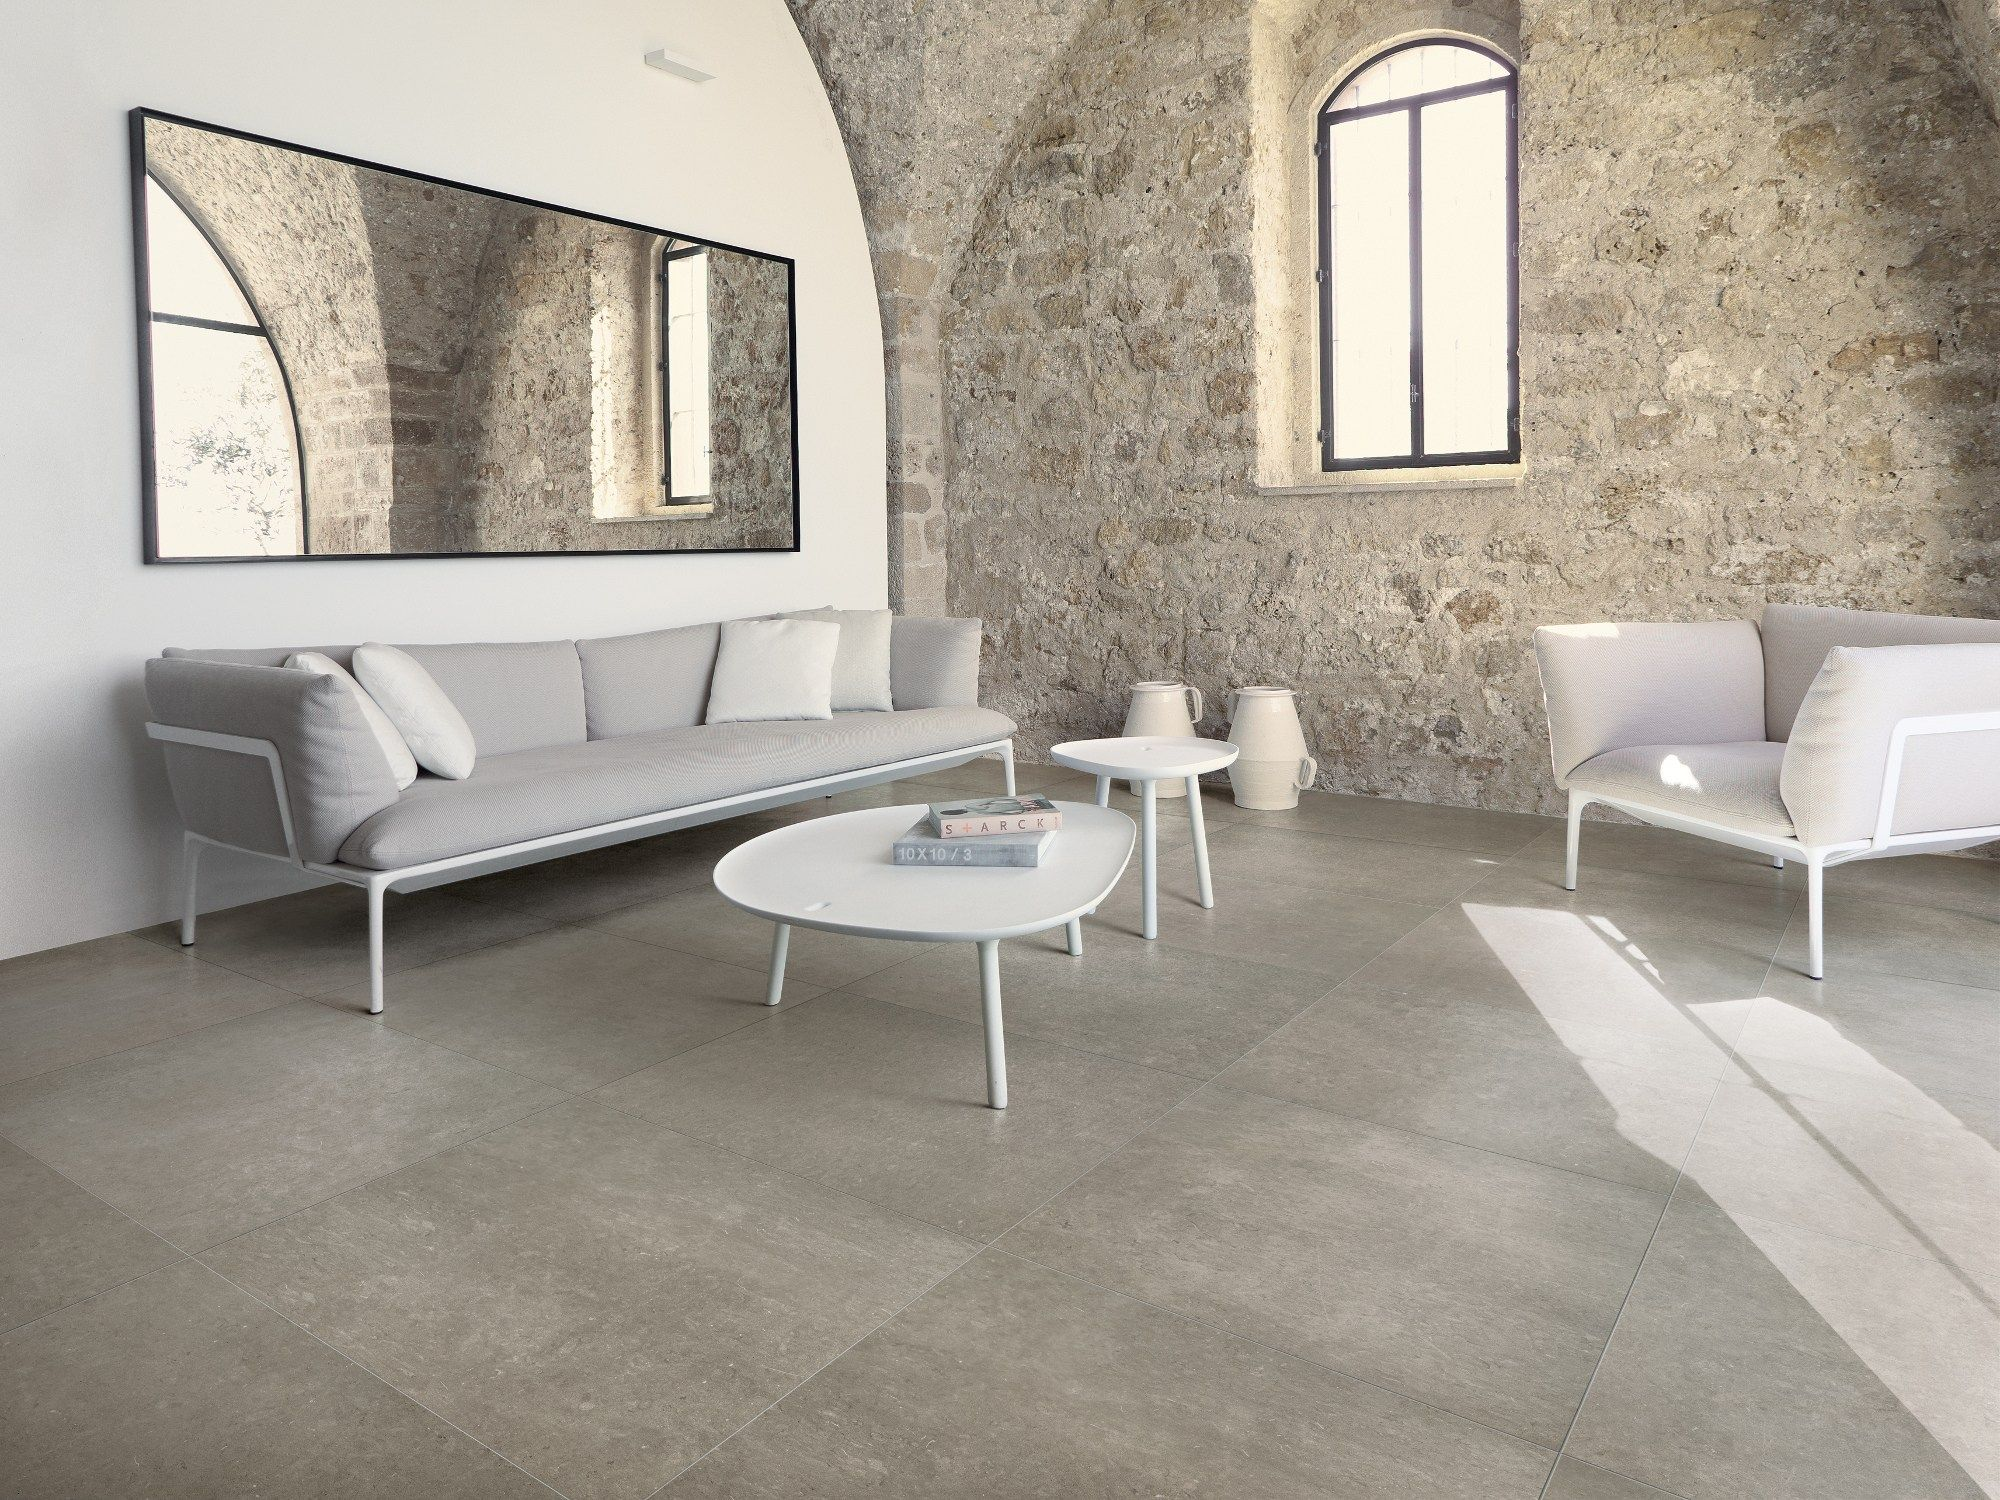 Ceramic Flooring With Stone Effect Poesia By Ceramiche Refin Living Room Tiles Rustic Living Room Design Brick Living Room